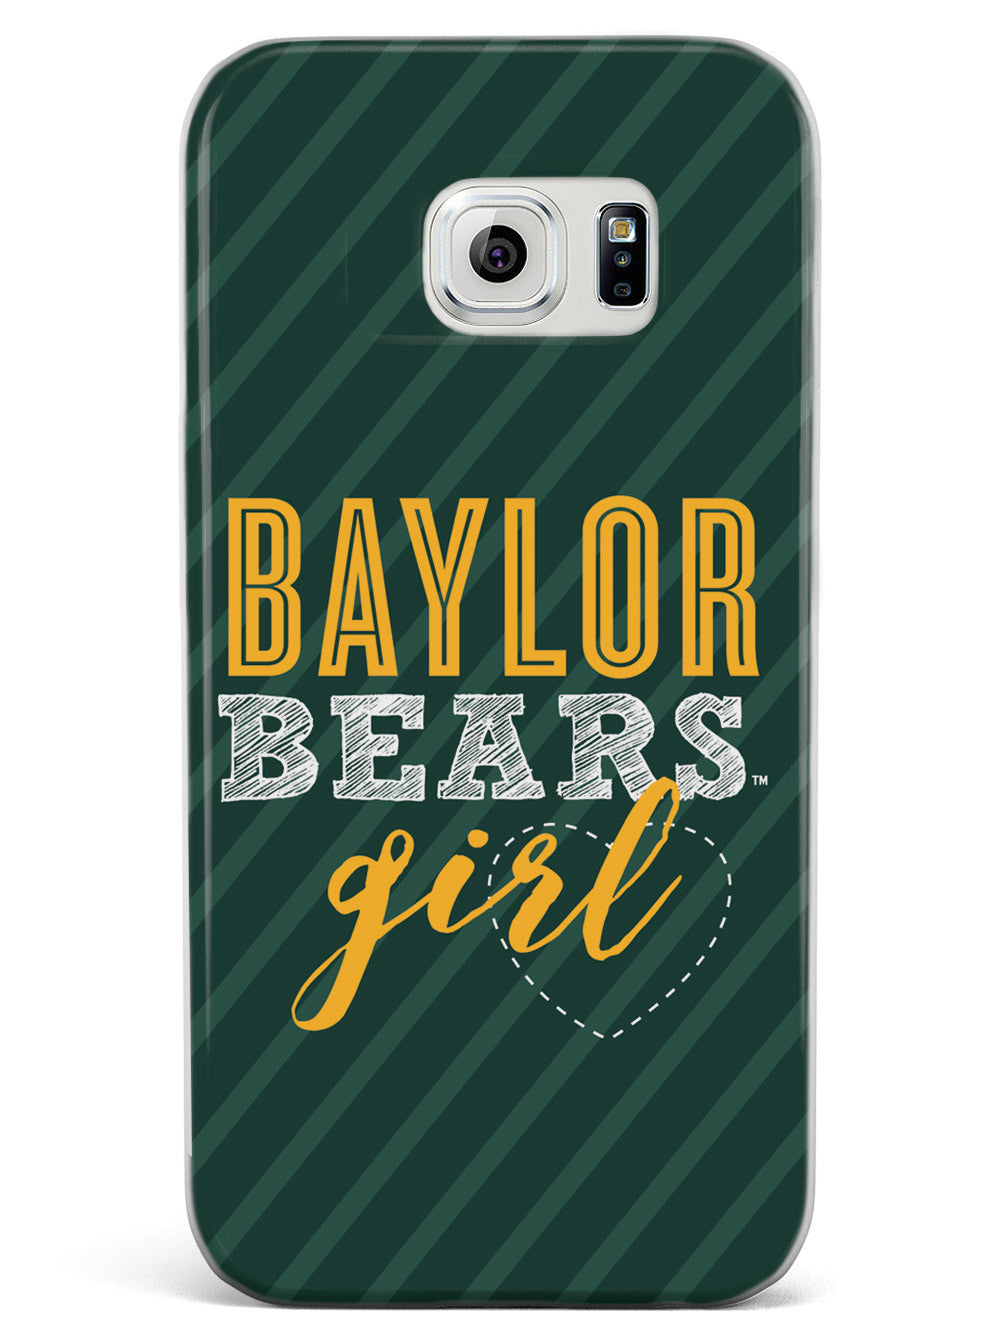 Baylor Bears Girl Case